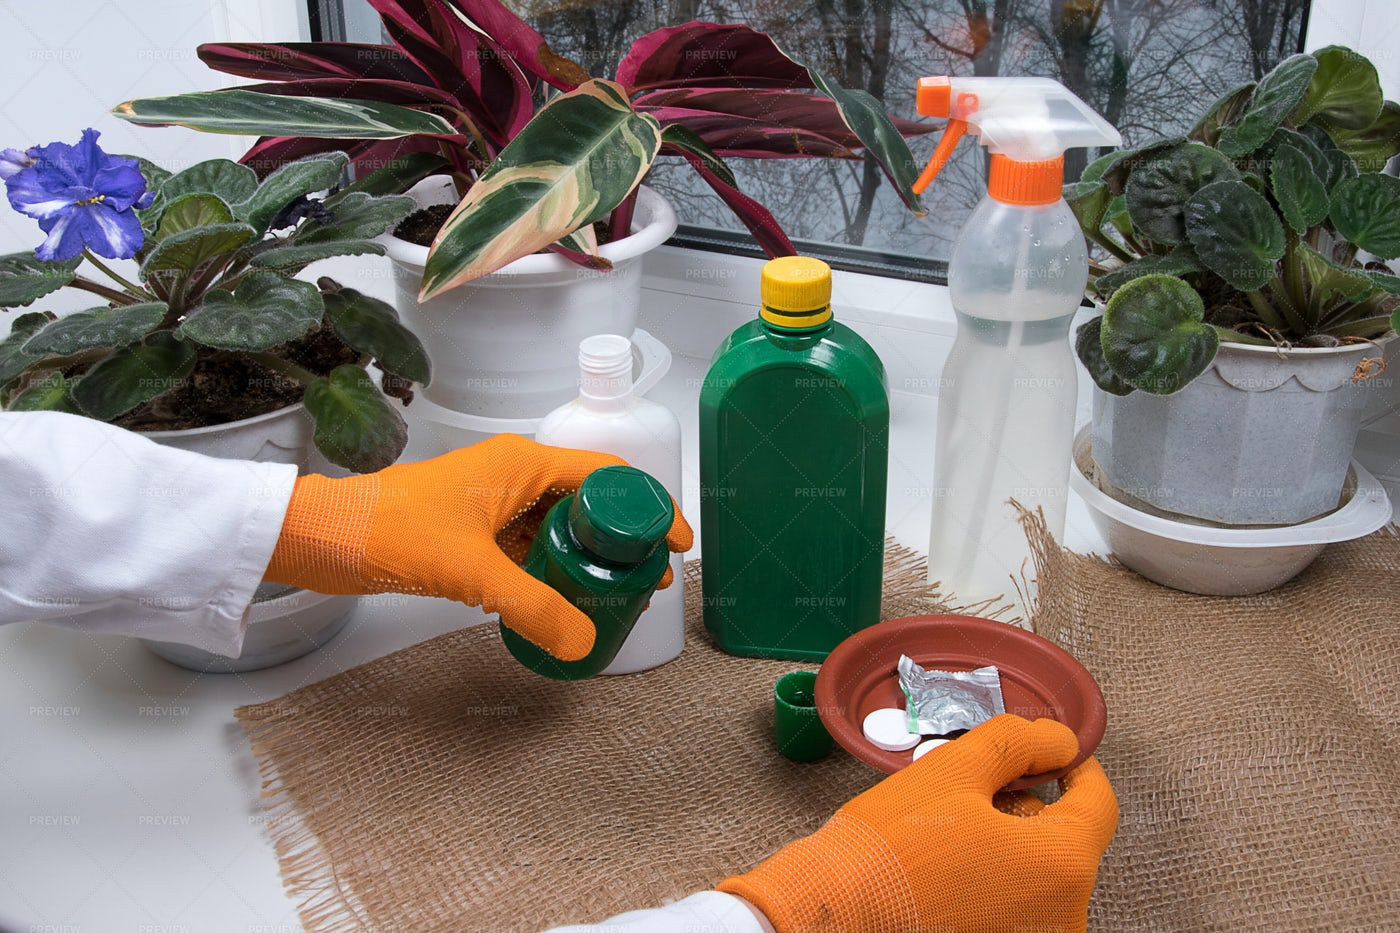 Agronomist Engineer Mixing Chemicals: Stock Photos